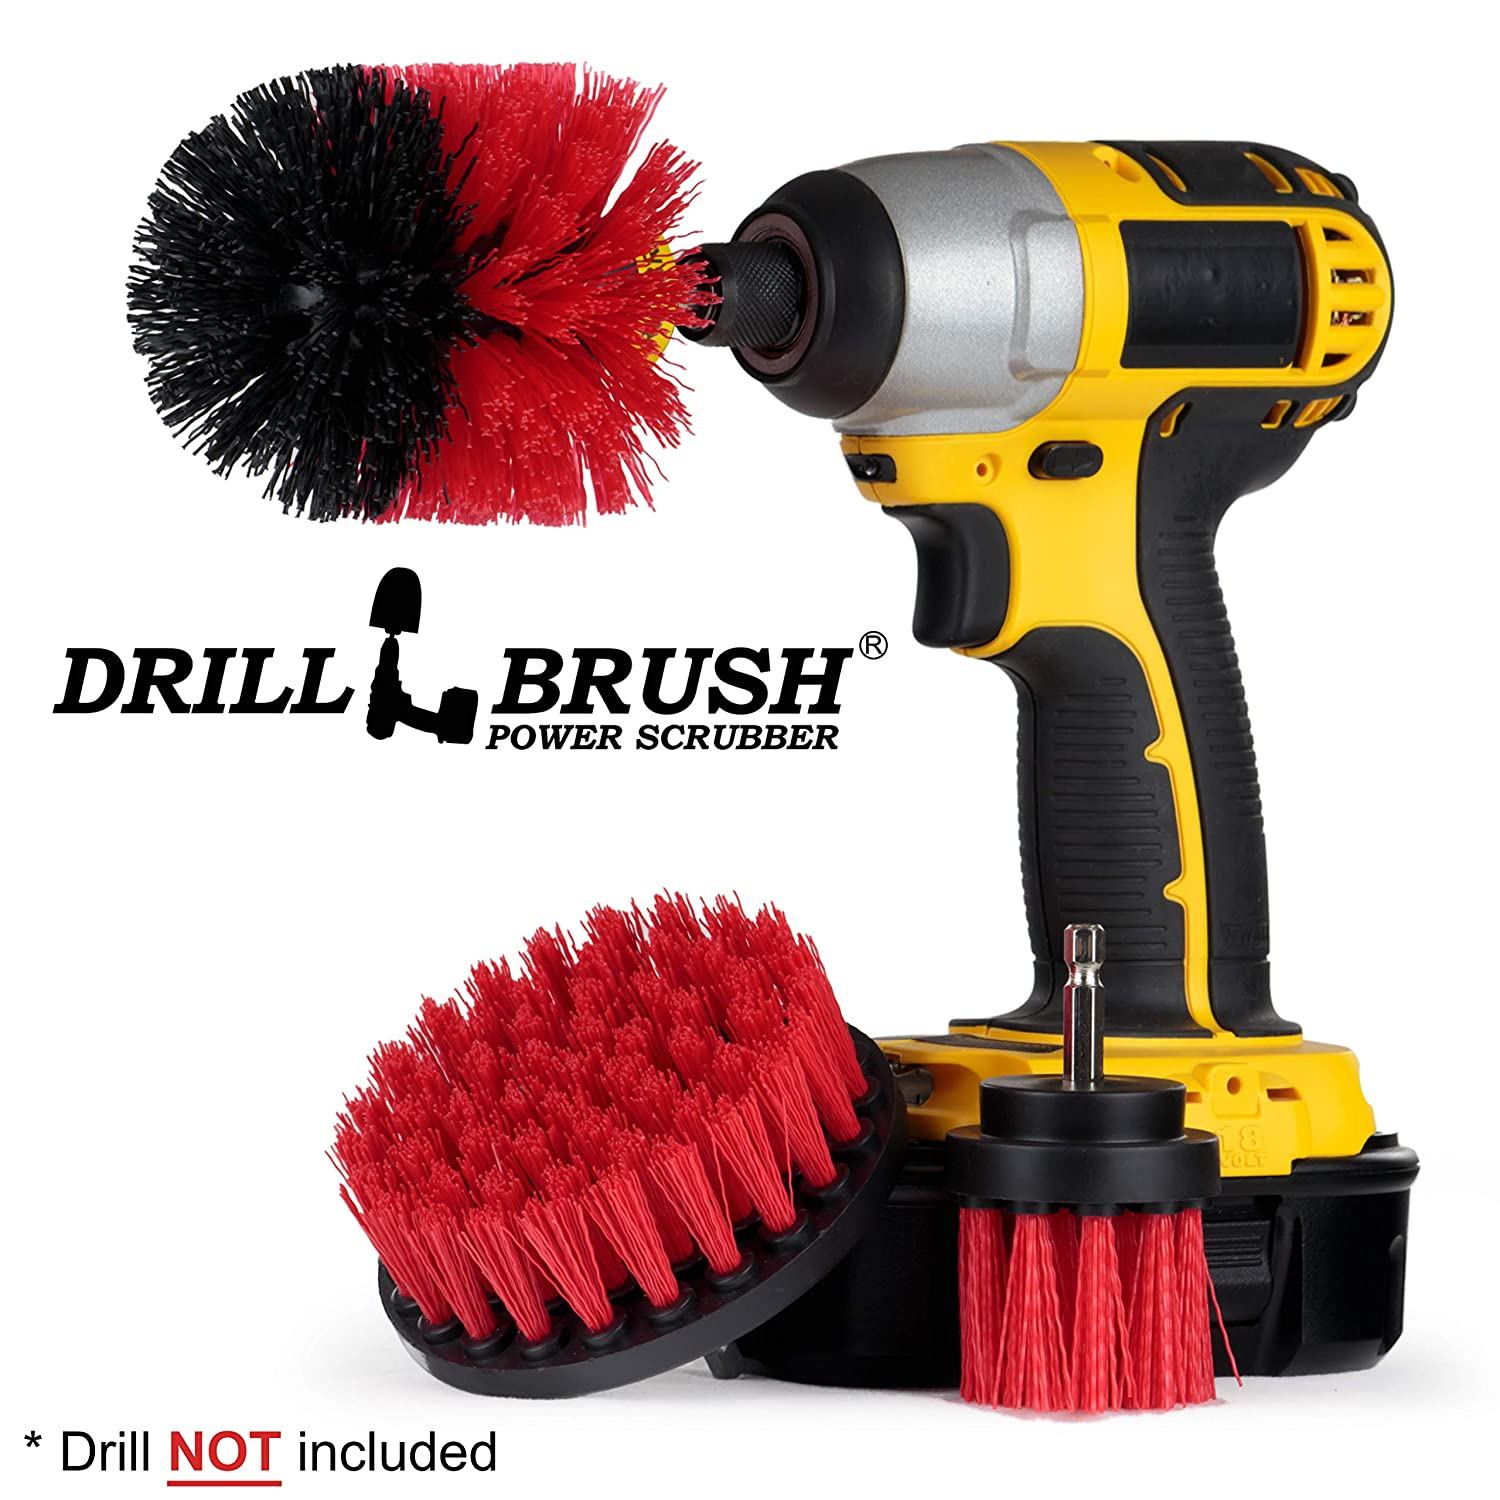 Drill Brush – Drill Scrubber Attachment – Brush for Drill – Drill Brush Rims – Brush Scrubber – Power Scrubber Brush – Carpet Drill Brush – Bathtub Cleaner – Grout Brush – Drill Brush Attachment Set